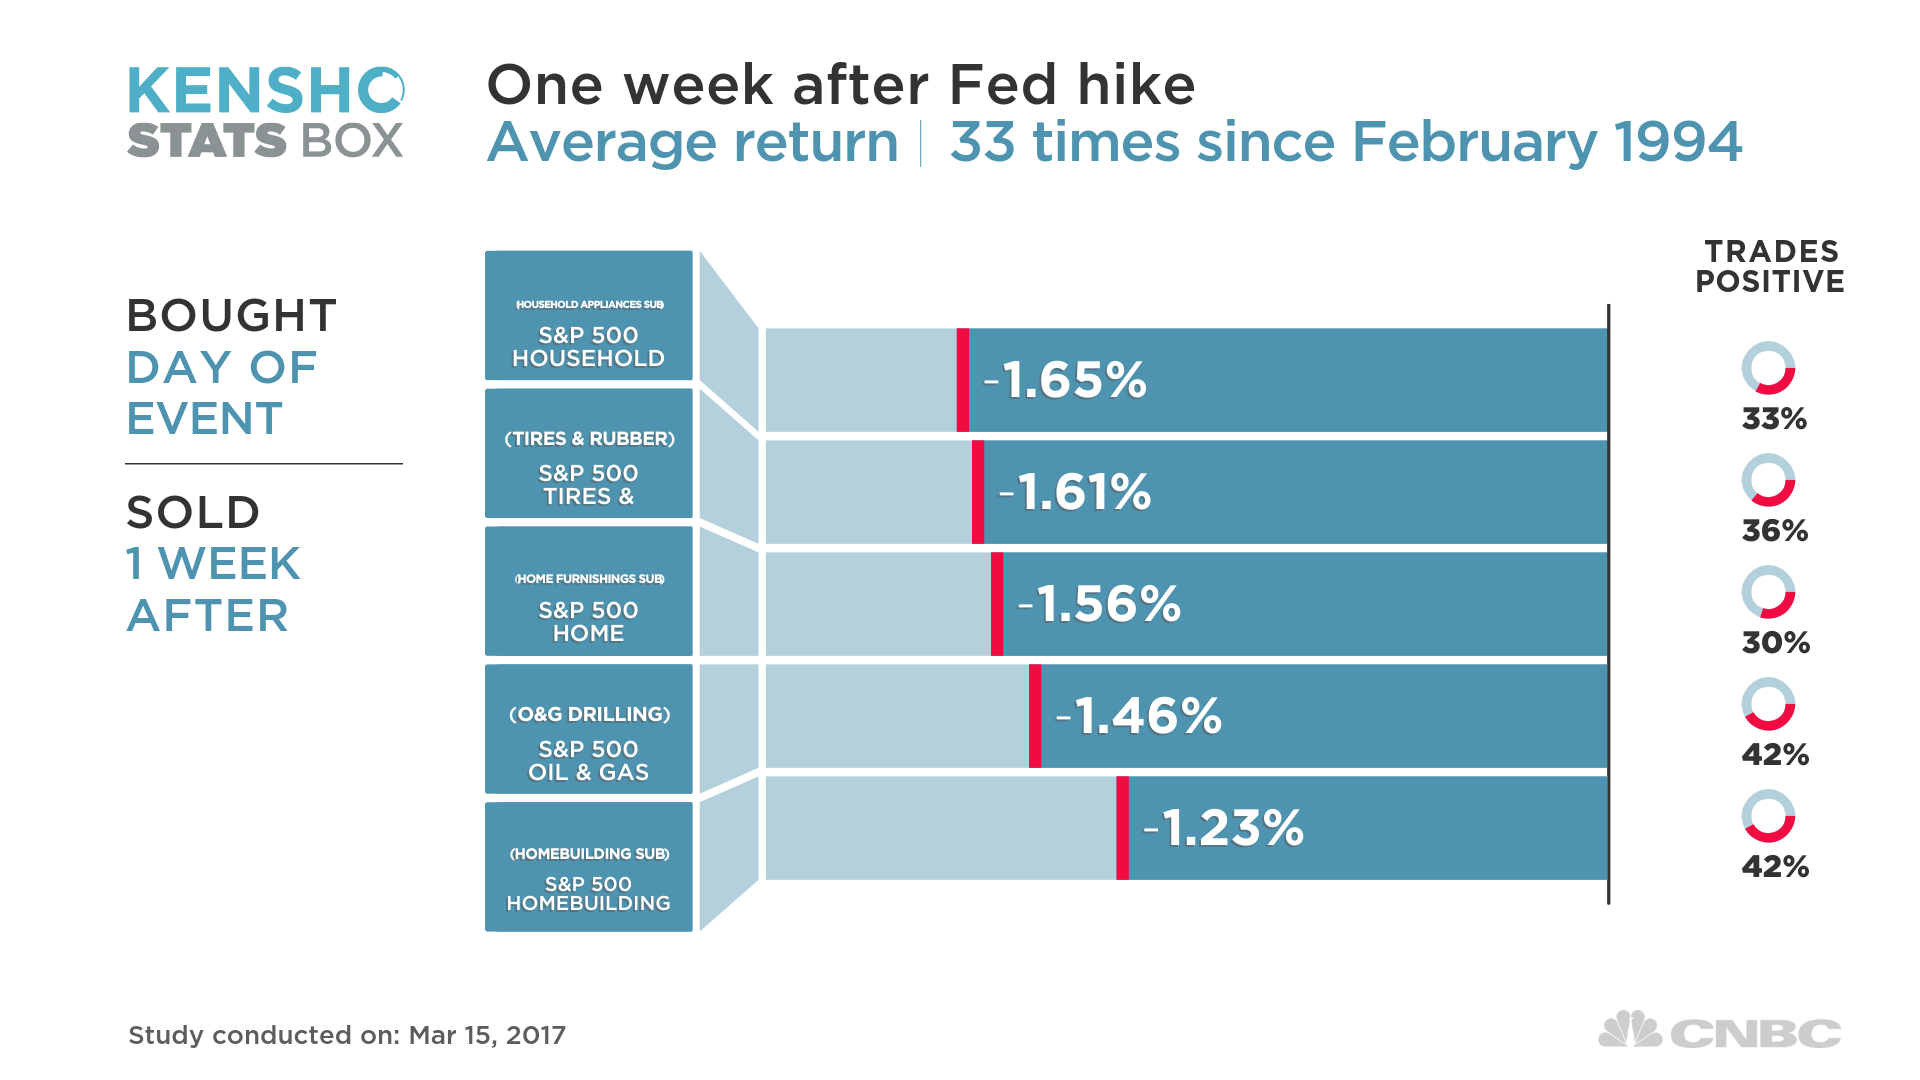 Meanwhile, industries with steady income streams not related to interest rates, like biotech, tend to outperform the market in the week after a hike.